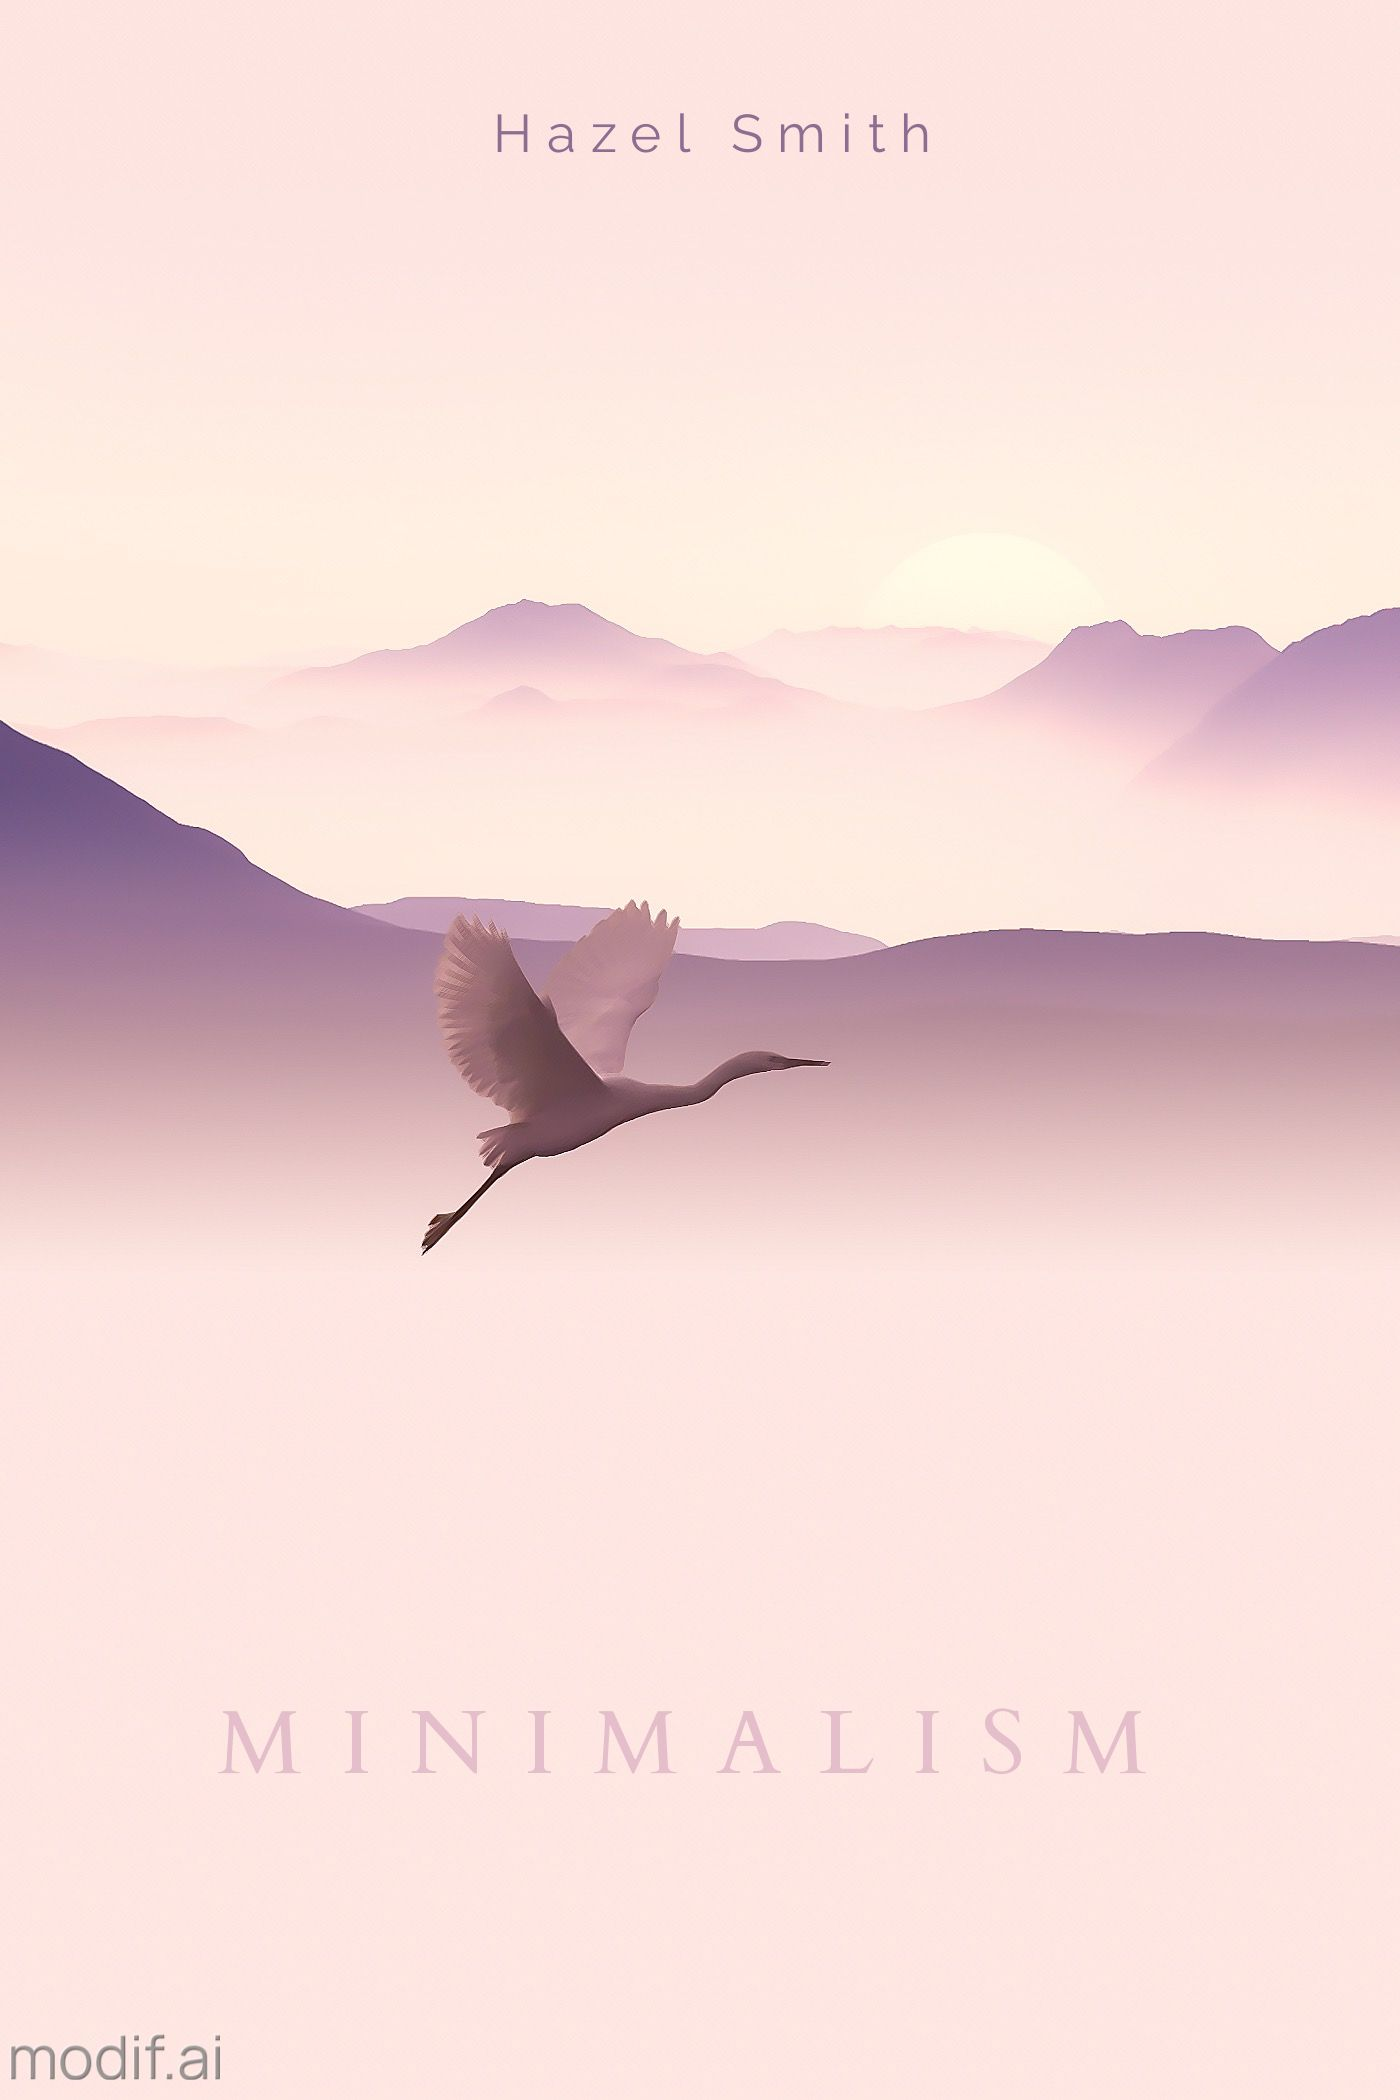 Minimalism Book Cover Template